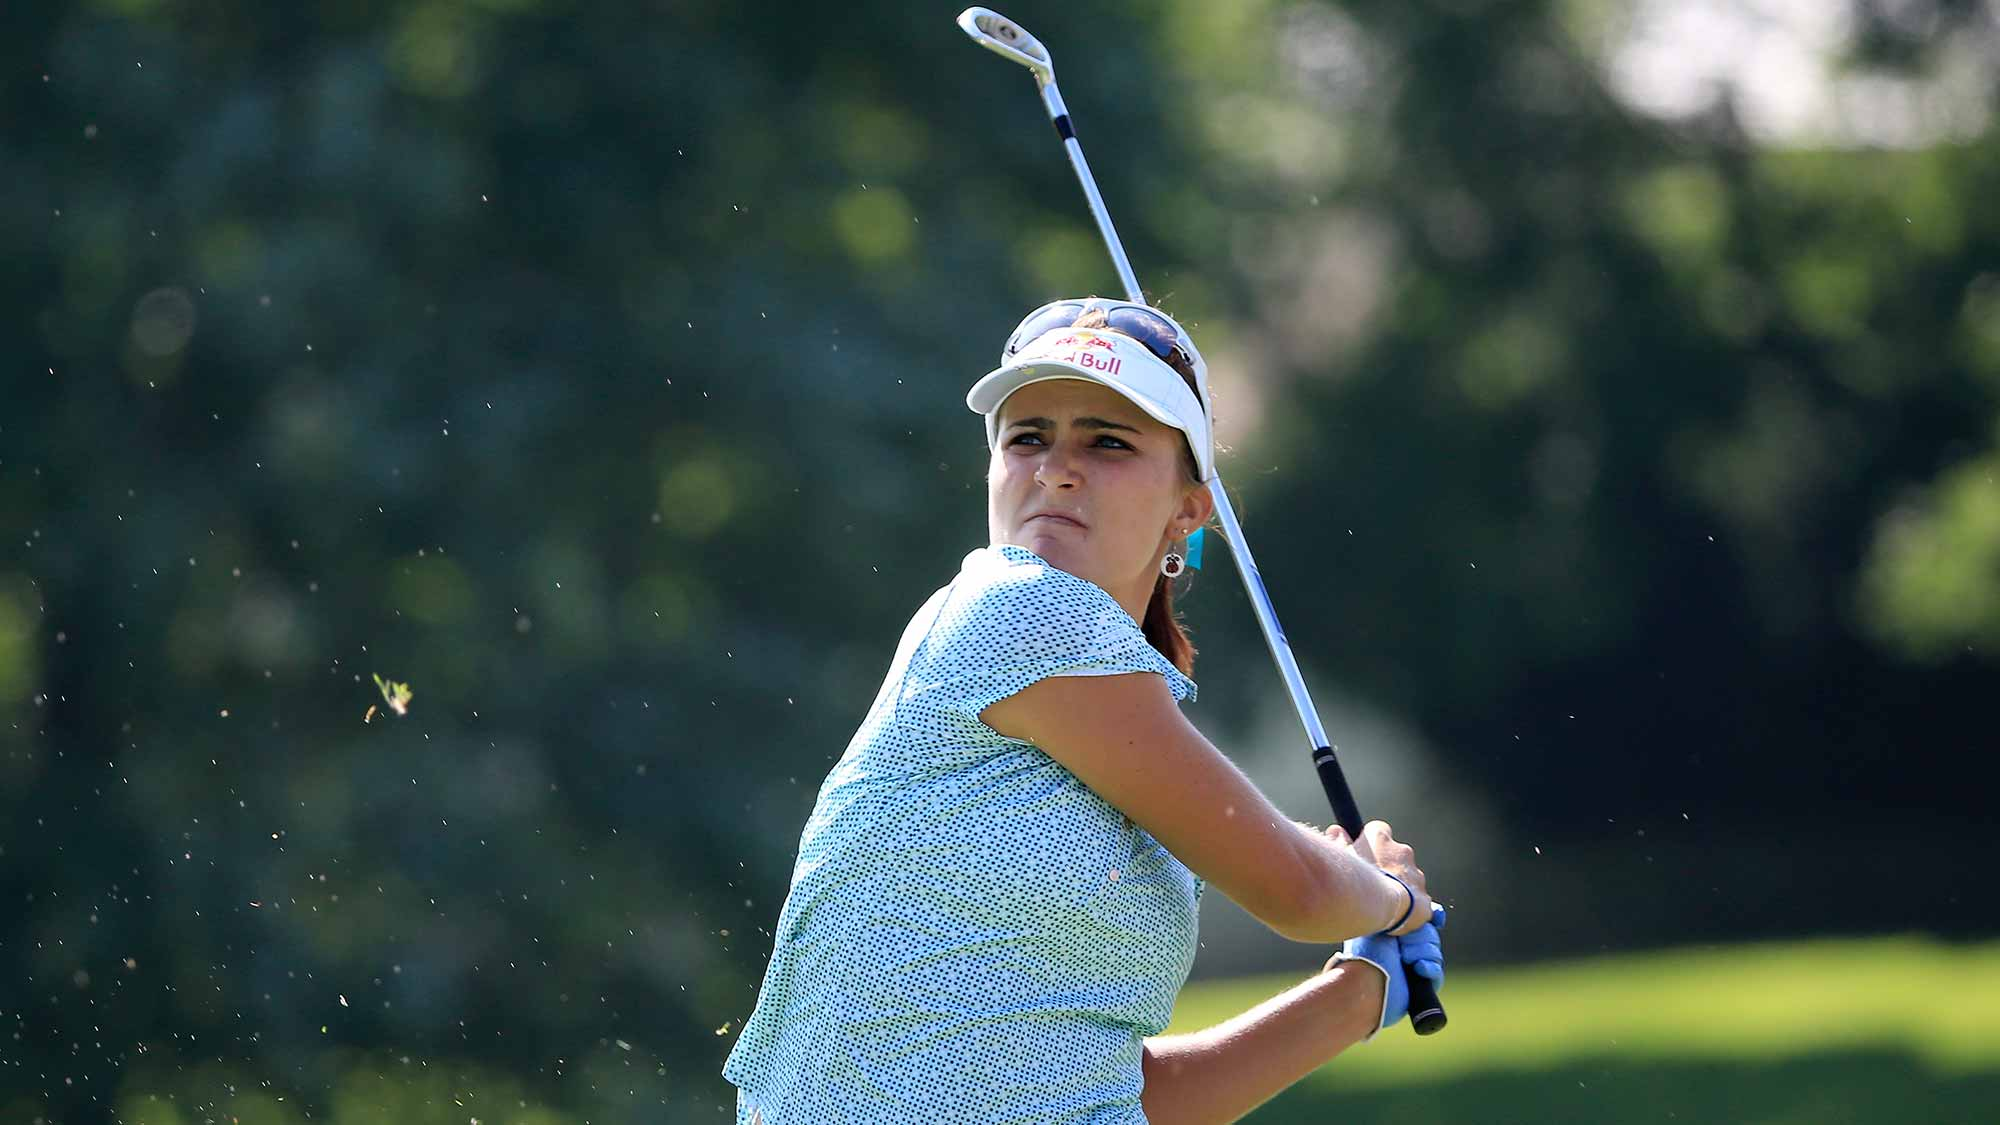 Lexi Thompson of the United States plays a shot on the sixth hole during the second round of the U.S. Women's Open at Lancaster Country Club